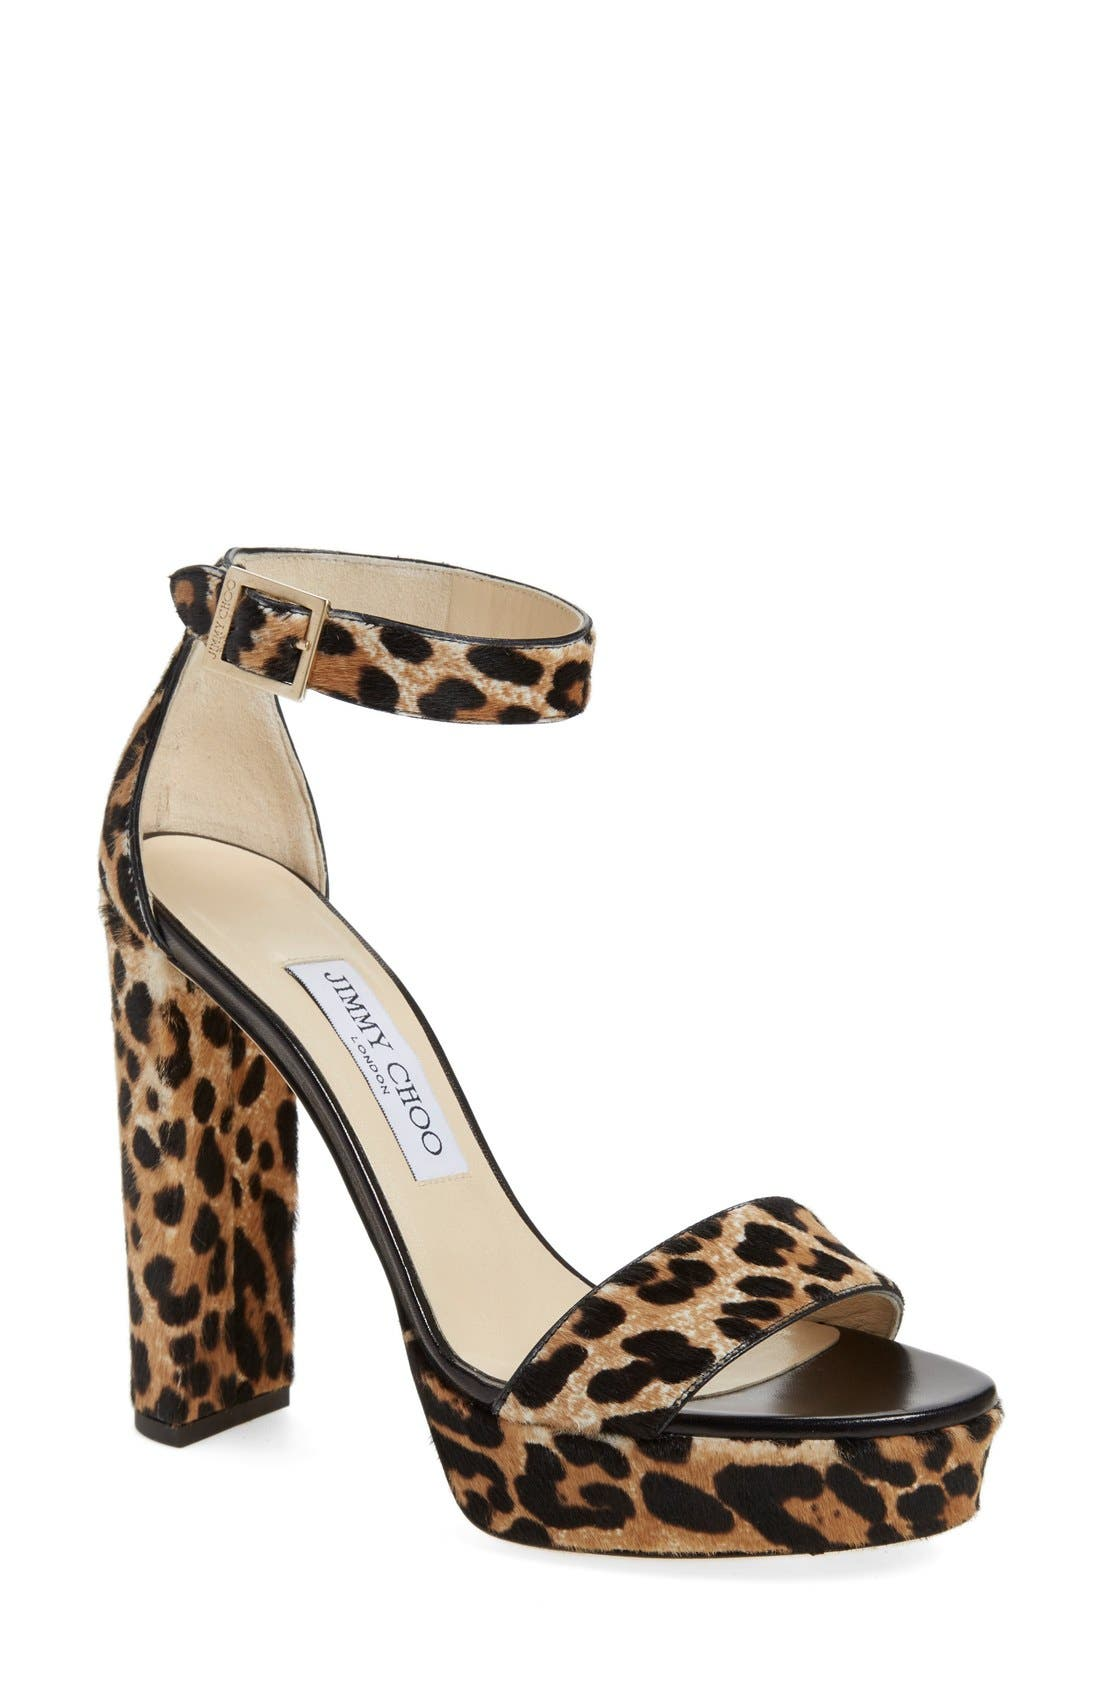 JIMMY CHOO, 'Holly' Ankle Strap Sandal, Main thumbnail 1, color, 200